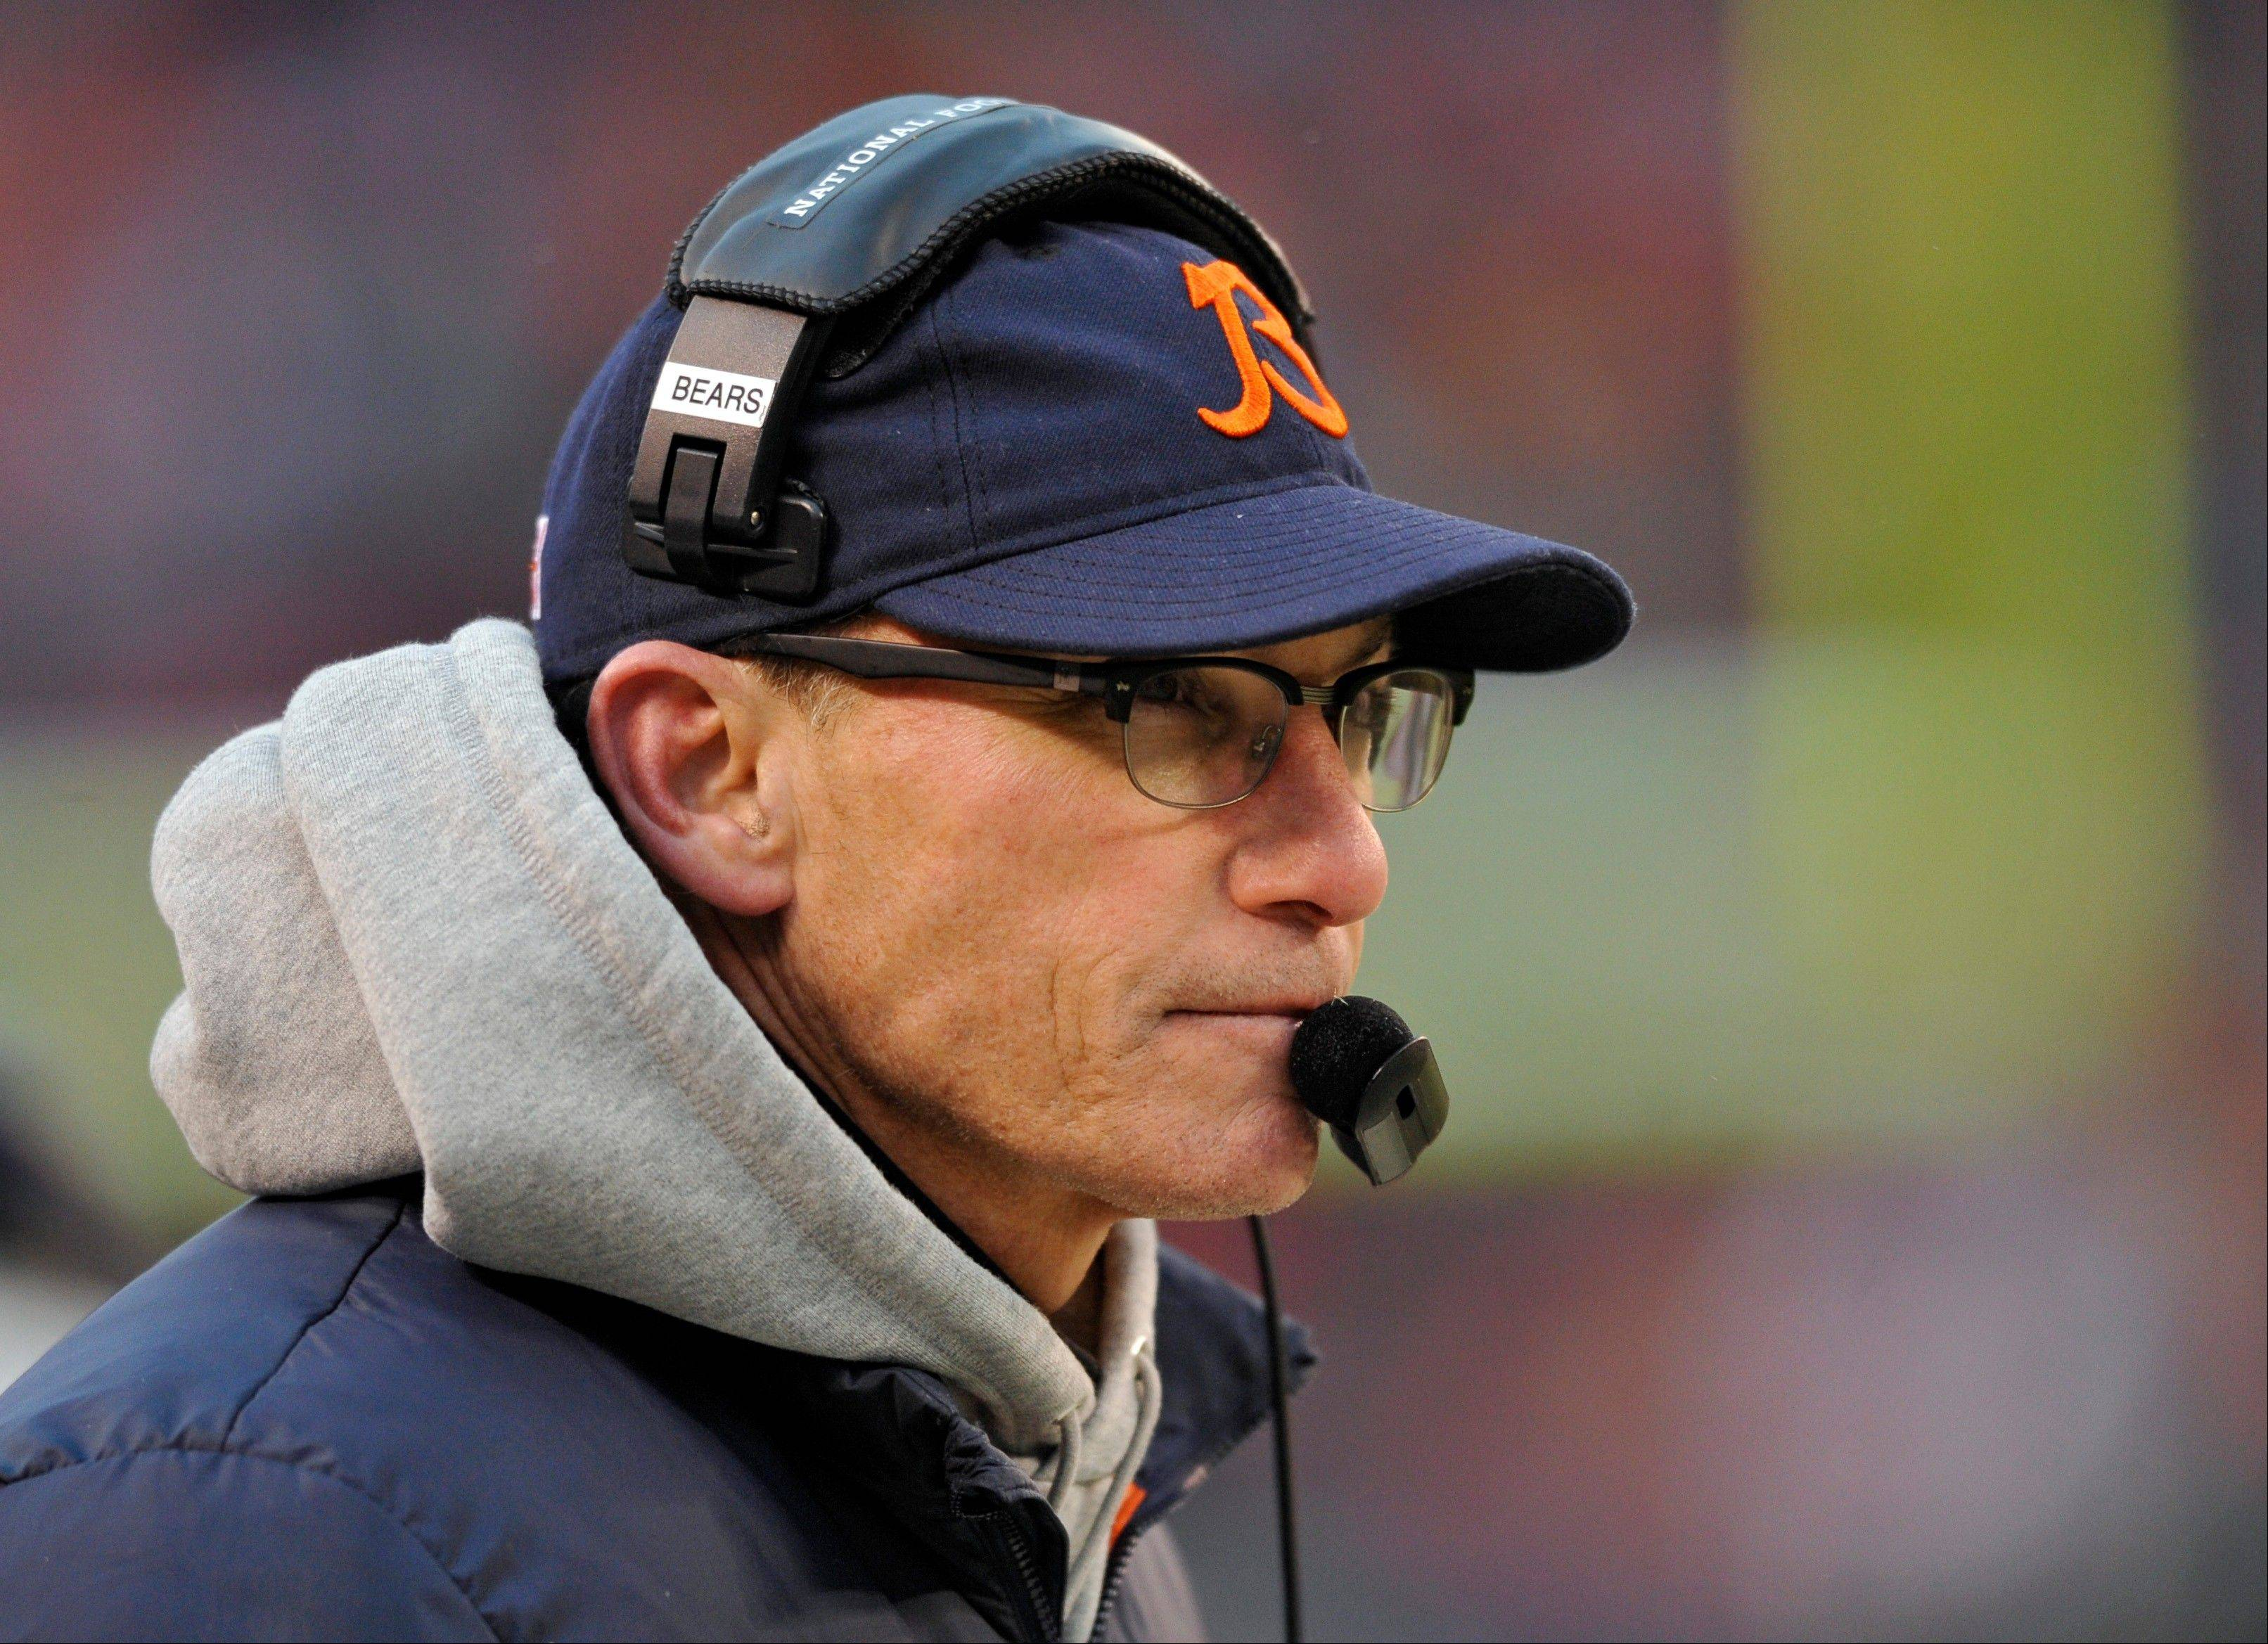 Bears coach Marc Trestman's off-season plan to have players learn more about each other seems to be working, especially for quarterback Jay Cutler.